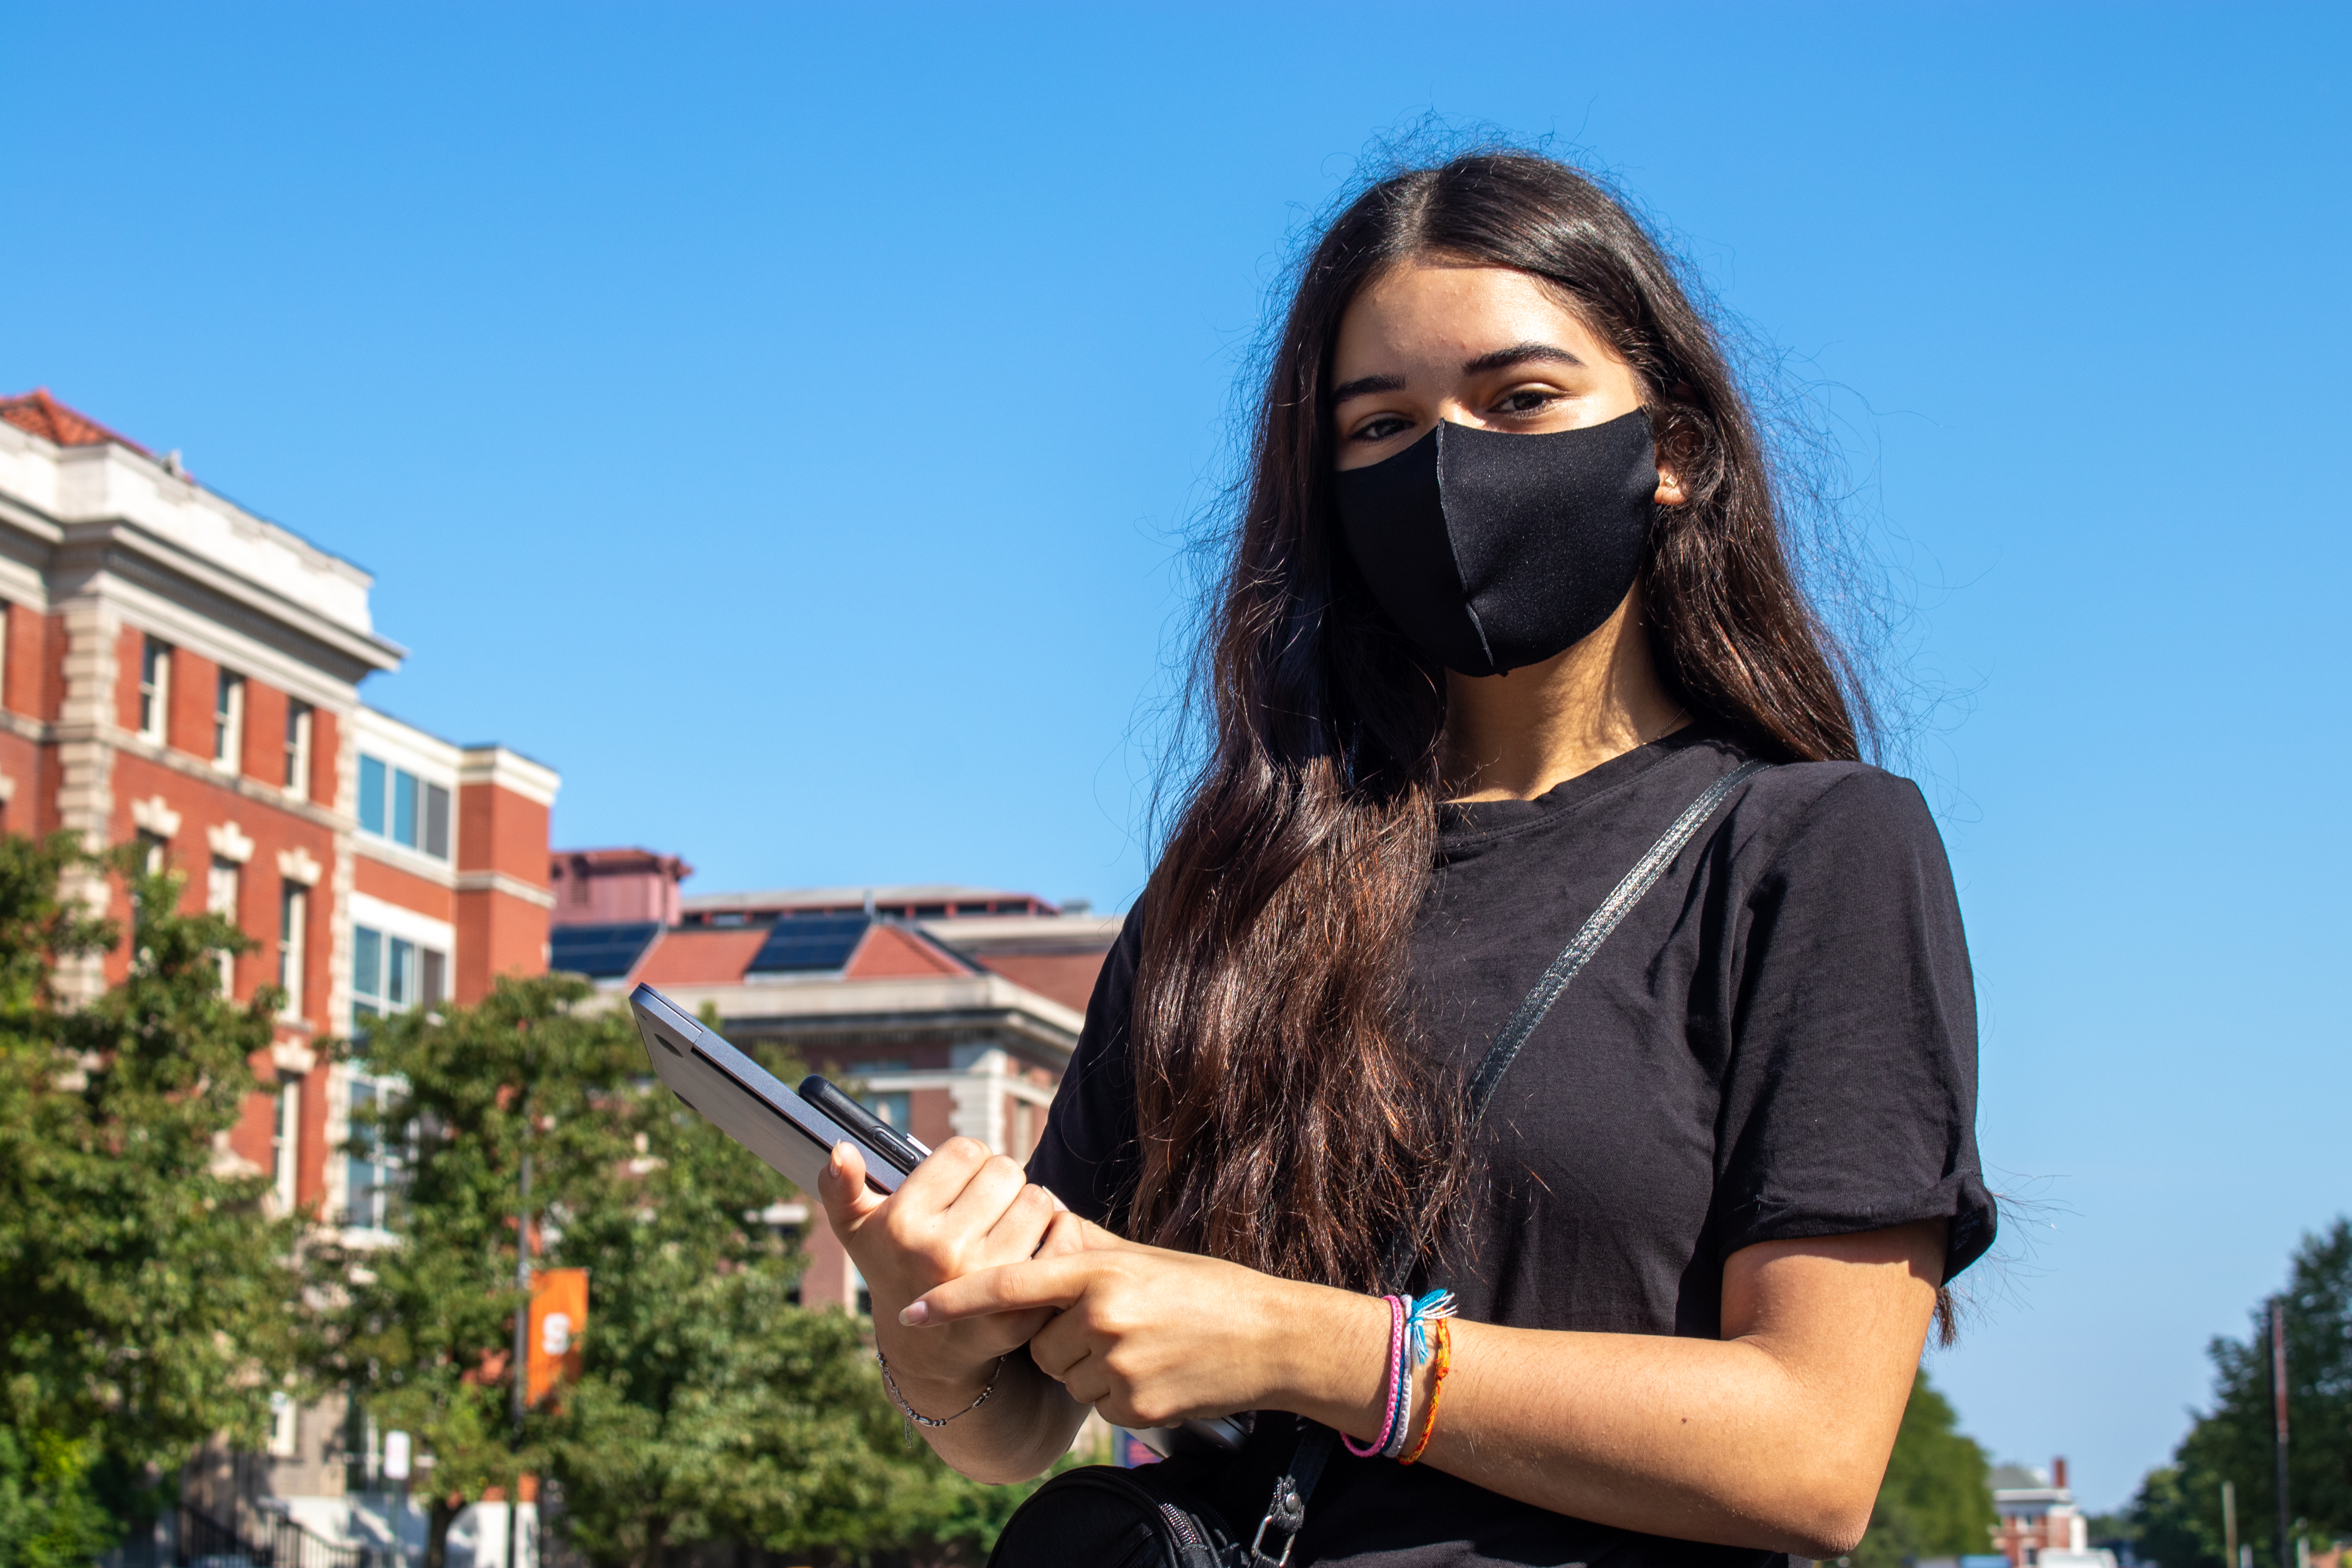 Management freshman Zain Nsour dons a black mask which completes her all-black outfit—though she said it wasn't planned. She woke up late for her first class and was scrambling to get out the door, and just grabbed the first mask she saw.